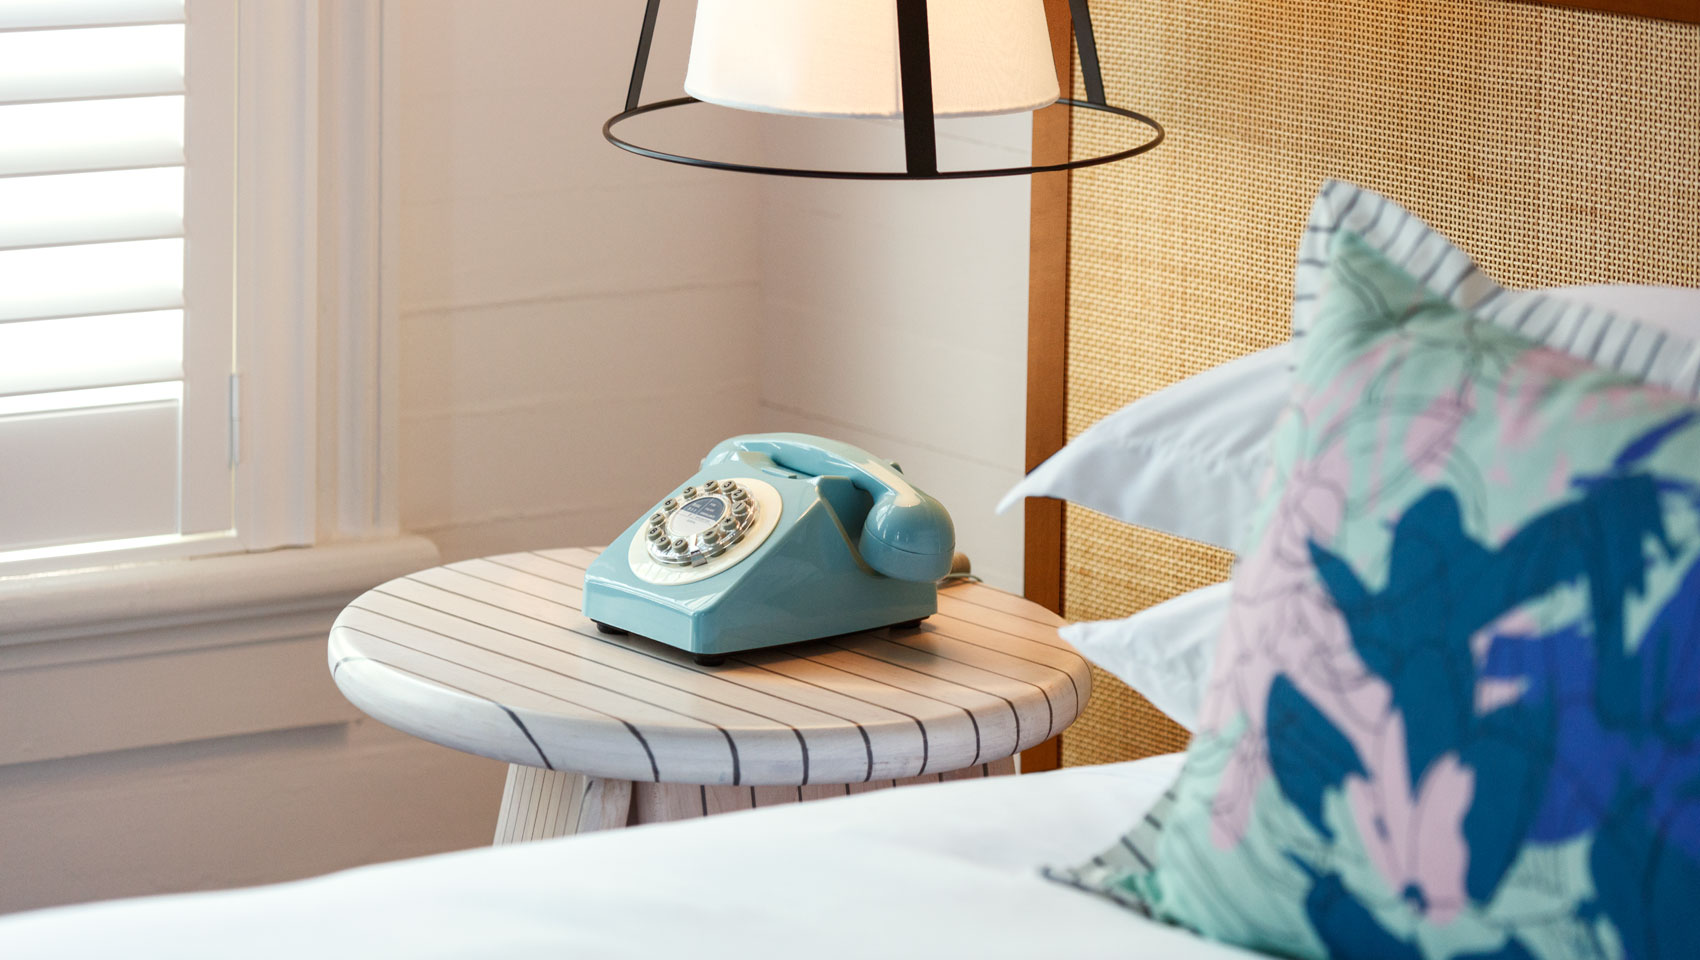 ridley house king guest room with side table and retro teal phone featured